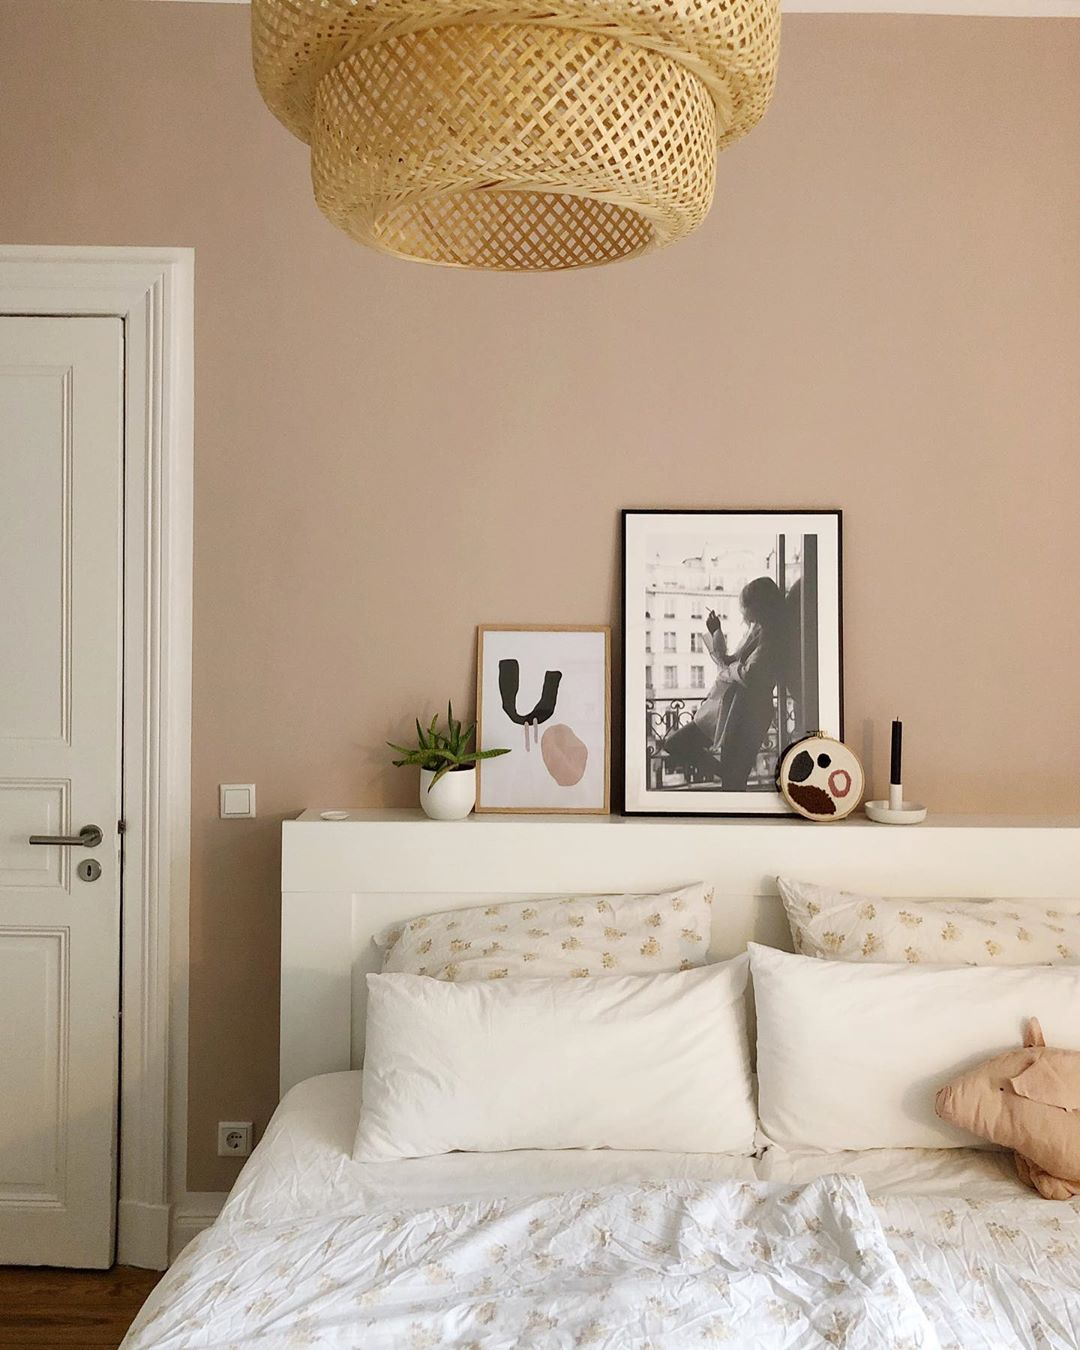 Quite To My Taste A Bedroom In Light Rose Solebich Bedrooms Schoner Wohnen Wandfarbe Schoner Wohnen Farbe Zimmerdekoration